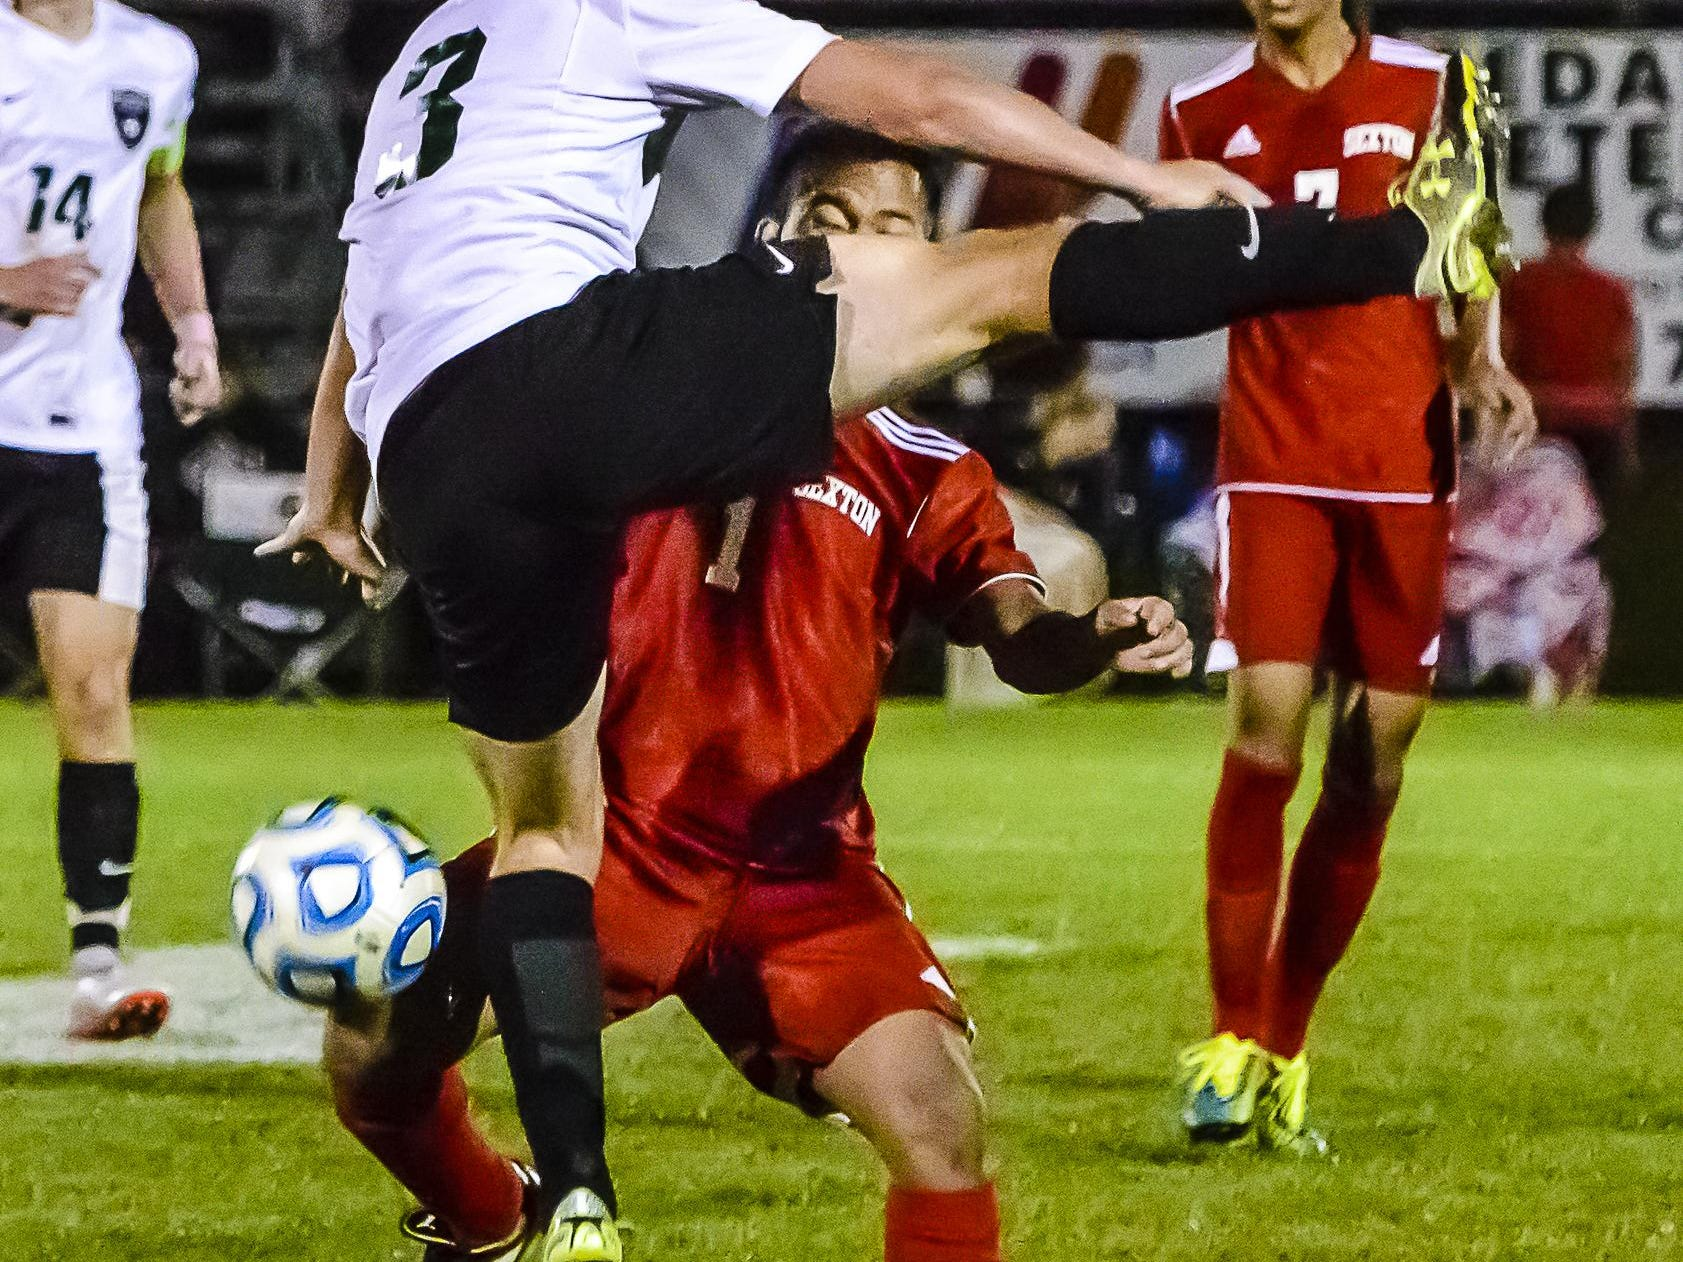 Nang Tuang ,right, of Sexton gets under Alex Scott of Williamston as Scott attempts to head the ball during their Division 3 District Semifinal game Wednesday. Scott would crash to the ground and Tuang would receive a yellow card.